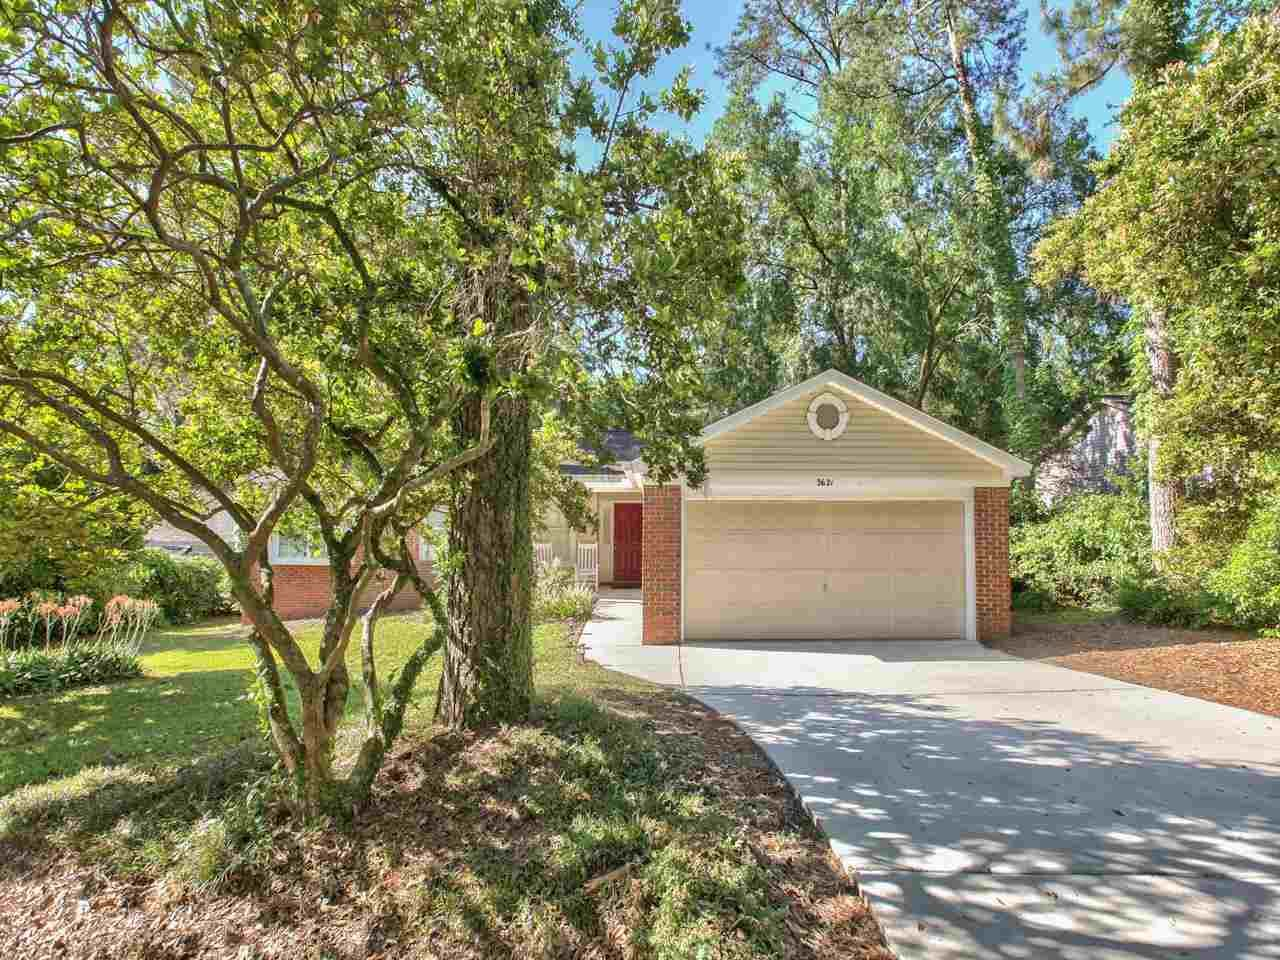 3621 Molly Pitcher Court, Tallahassee, FL 32308 - MLS#: 332094